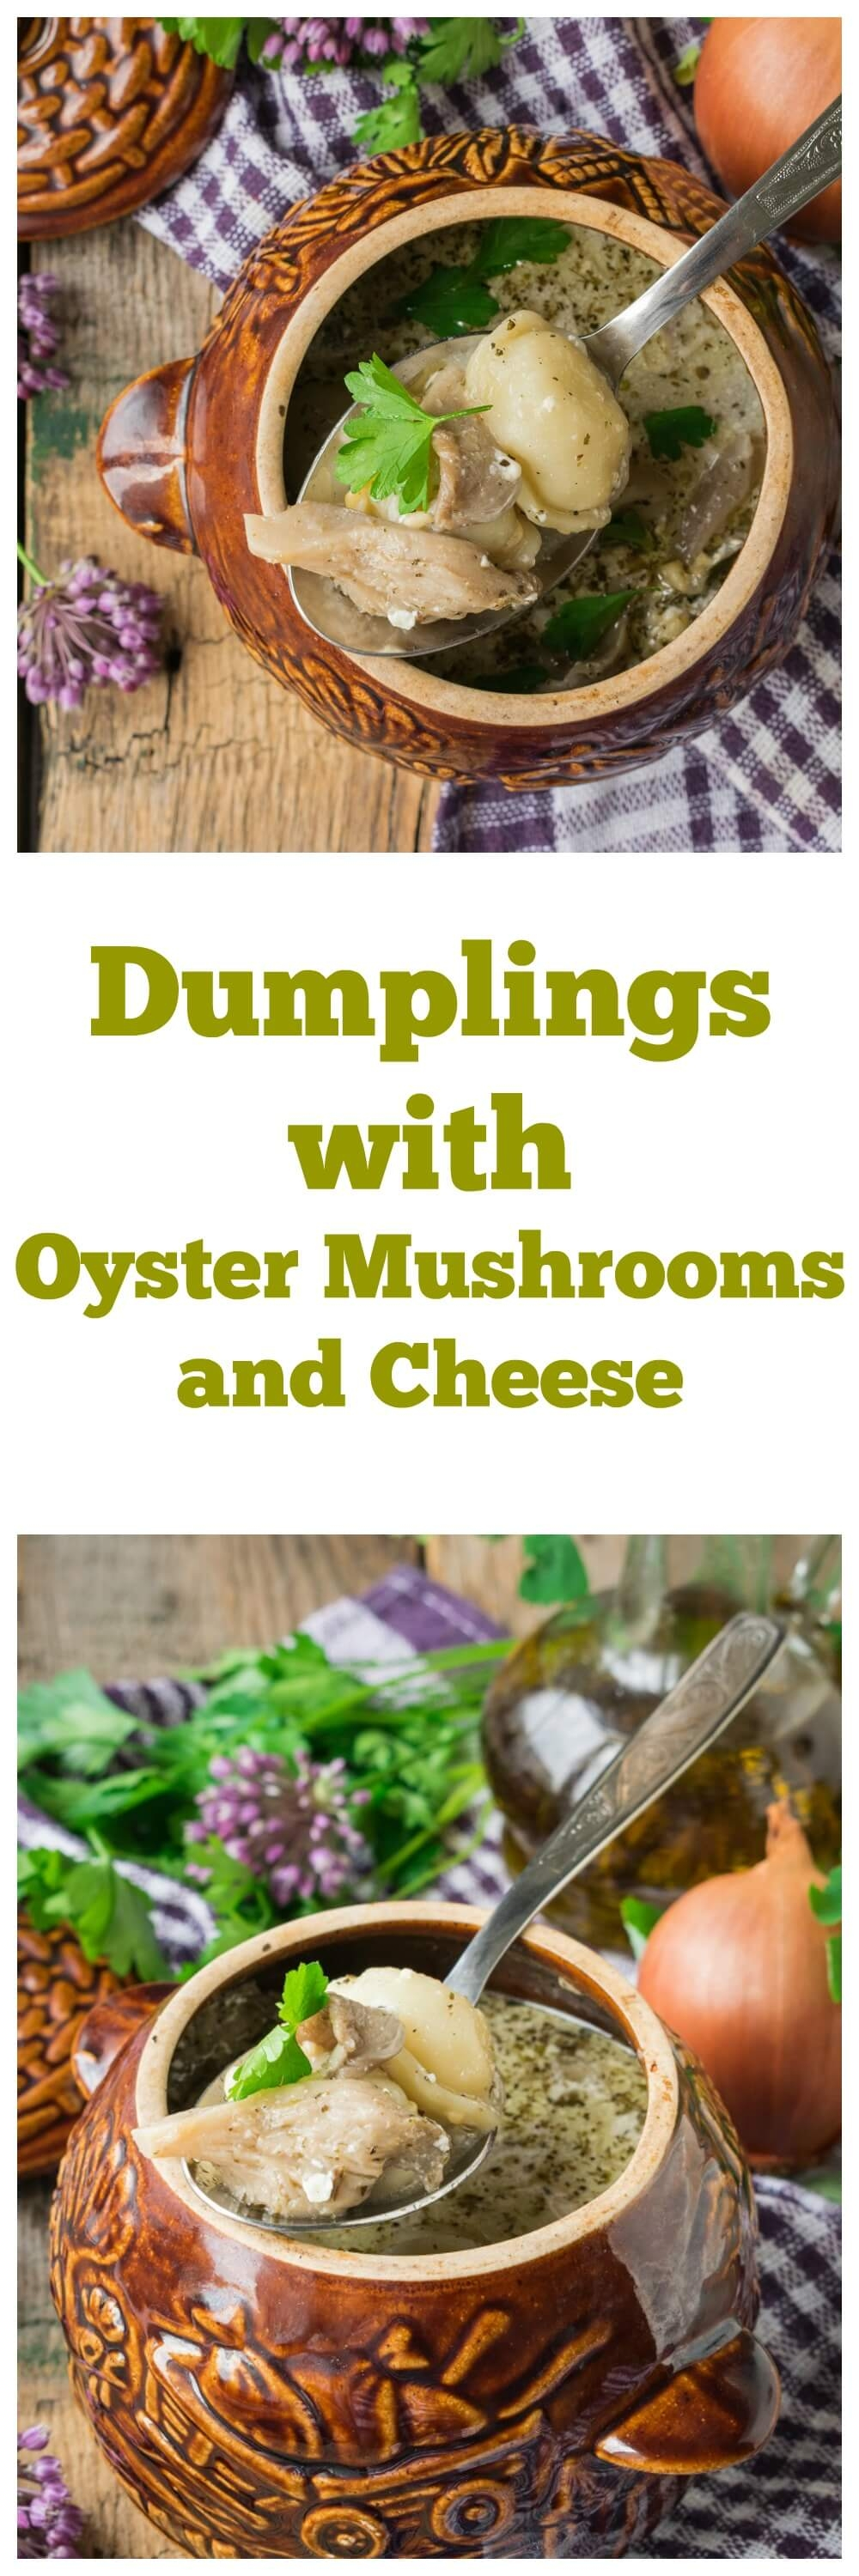 Dumplings with Oyster Mushrooms and Cheese